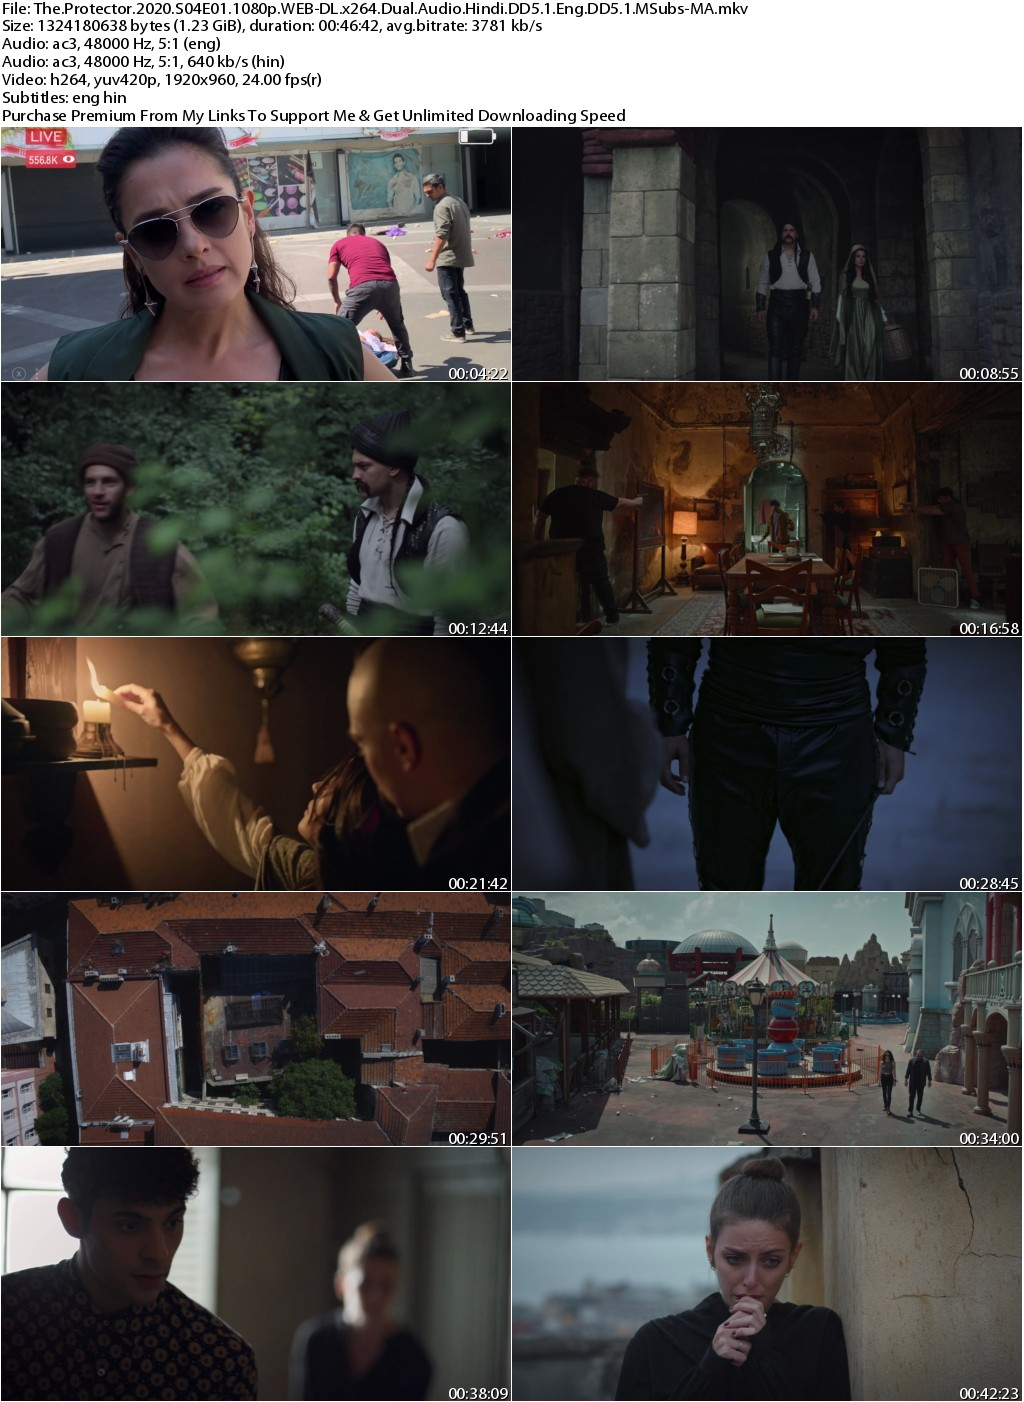 The Protector 2020 S04 Complete 1080p WEB-DL x264 Dual Audio Hindi DD5.1 Eng DD5.1 MSubs 8.3GB-MA